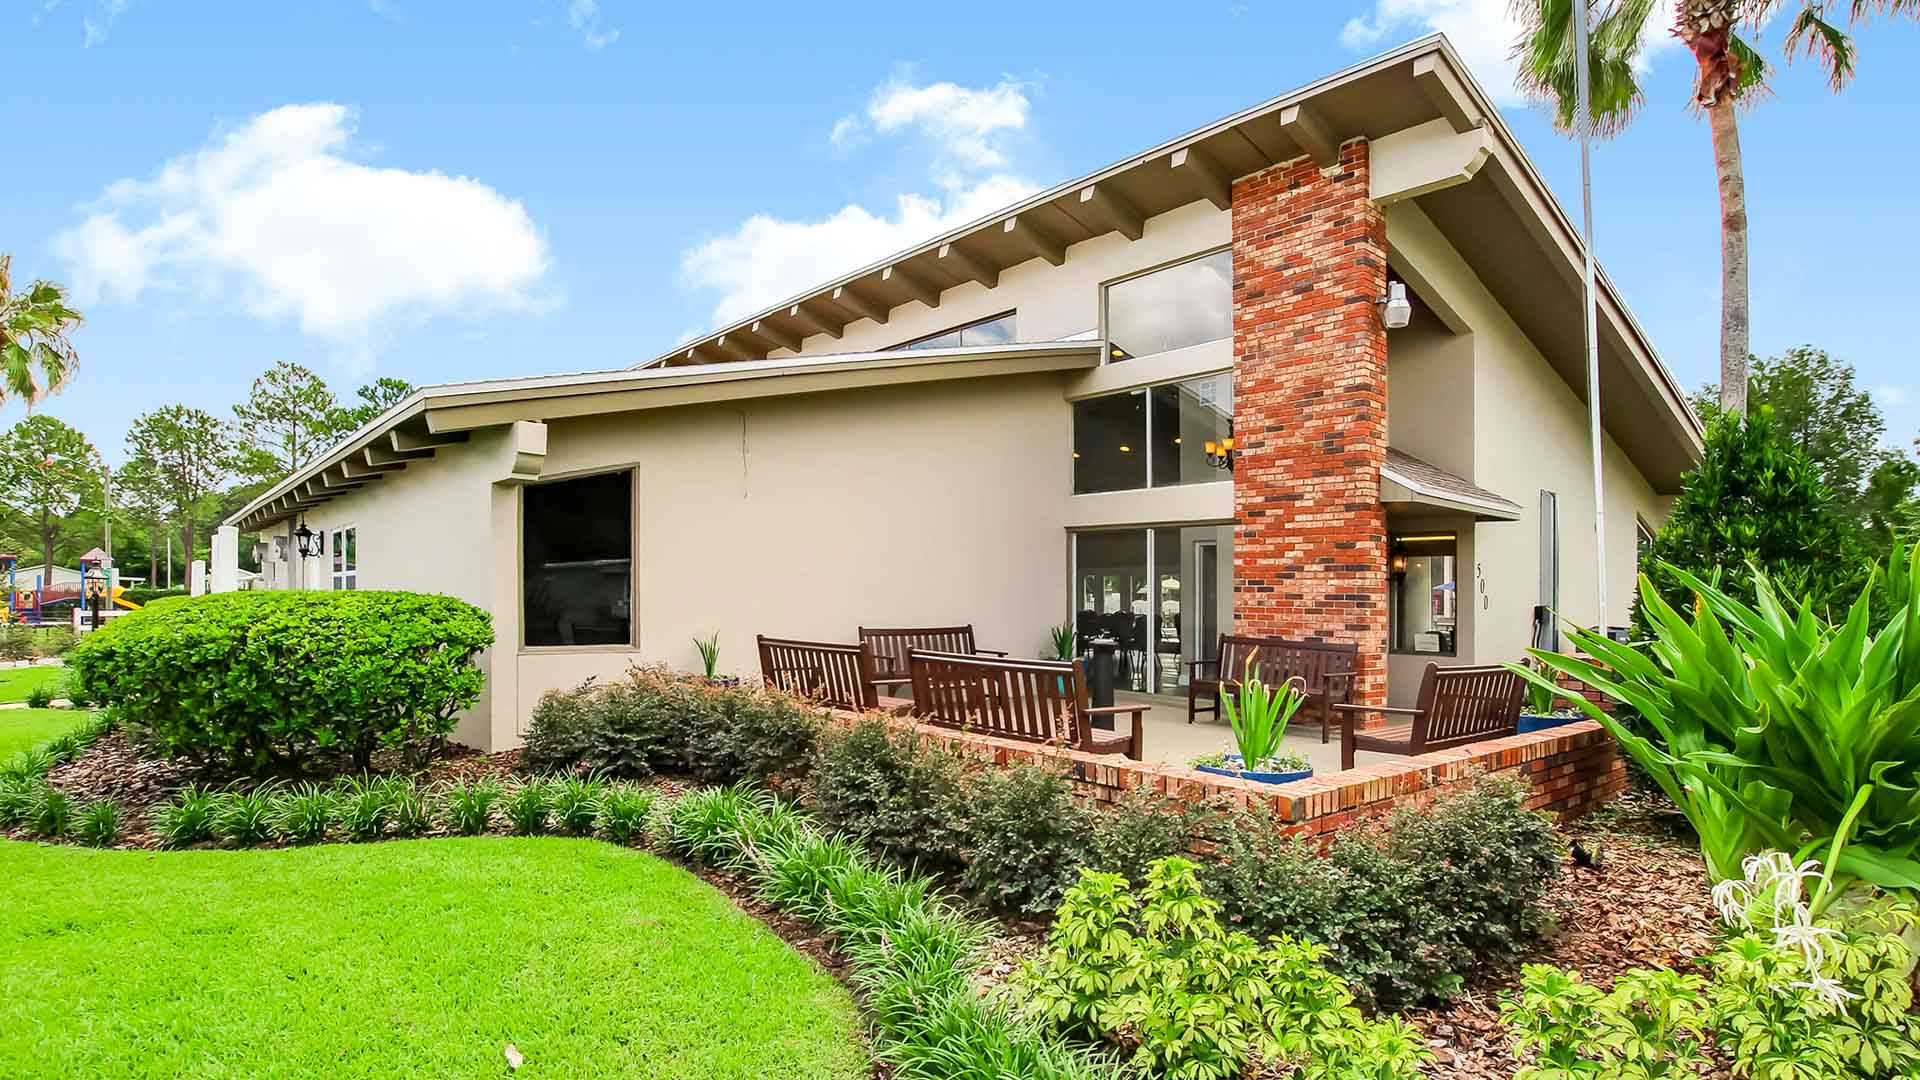 Carriage Cove Manufactured Homes Community Clubhouse in Sanford, FL